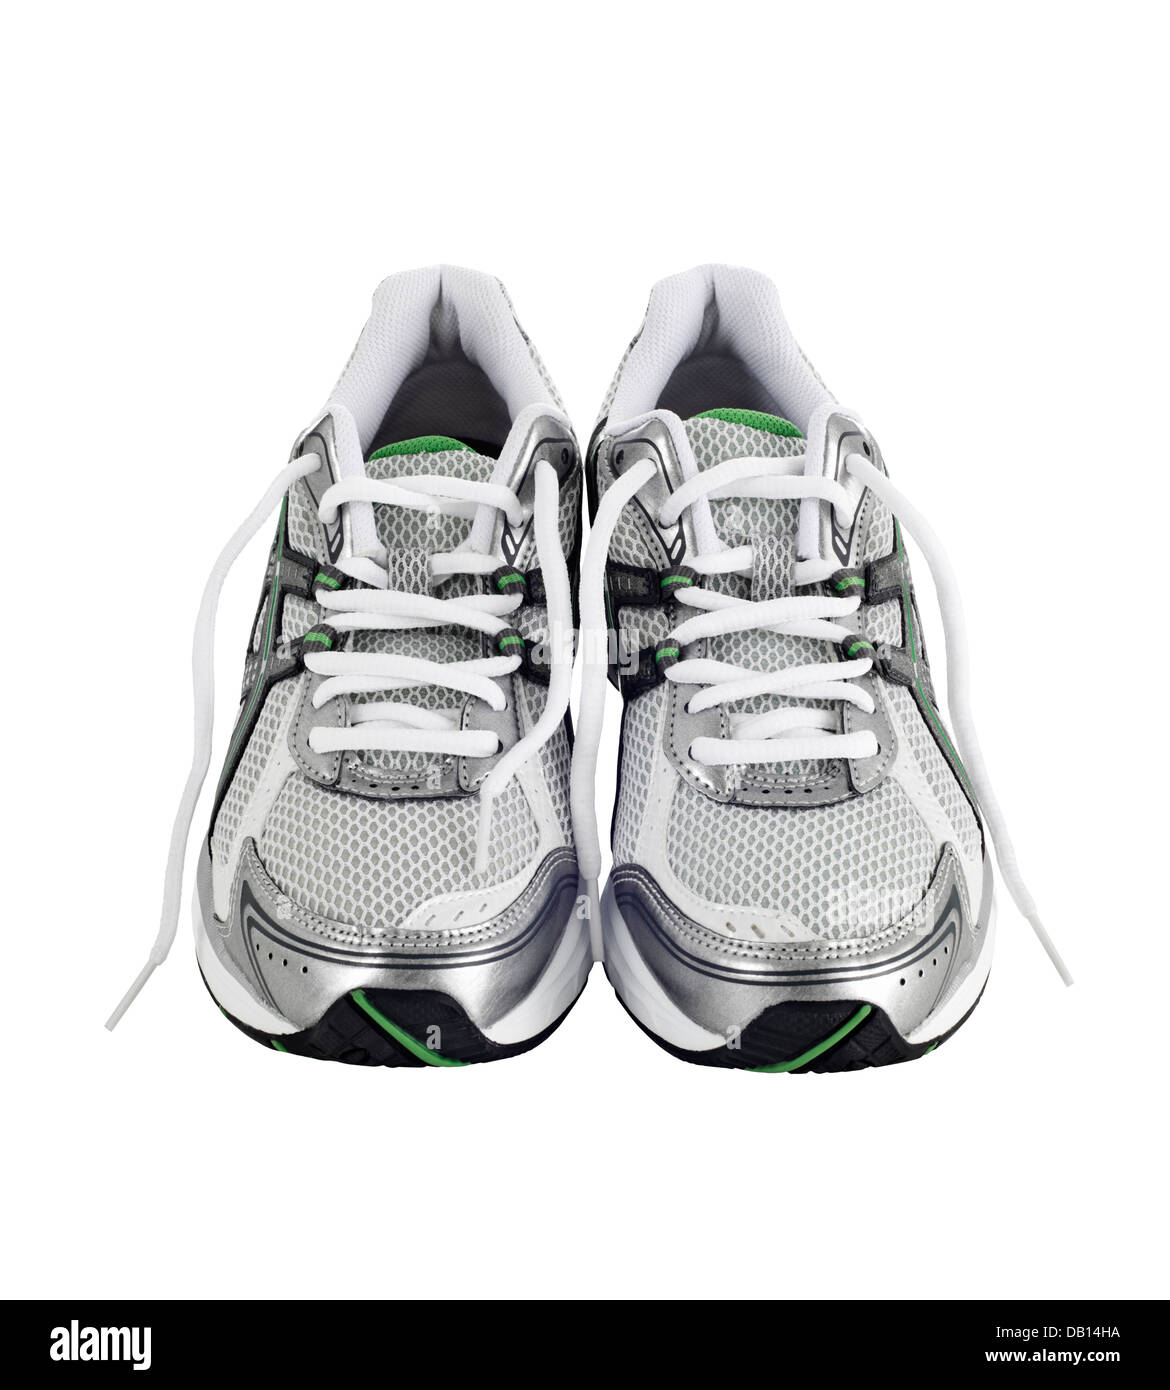 Pair of running shoes Stock Photo